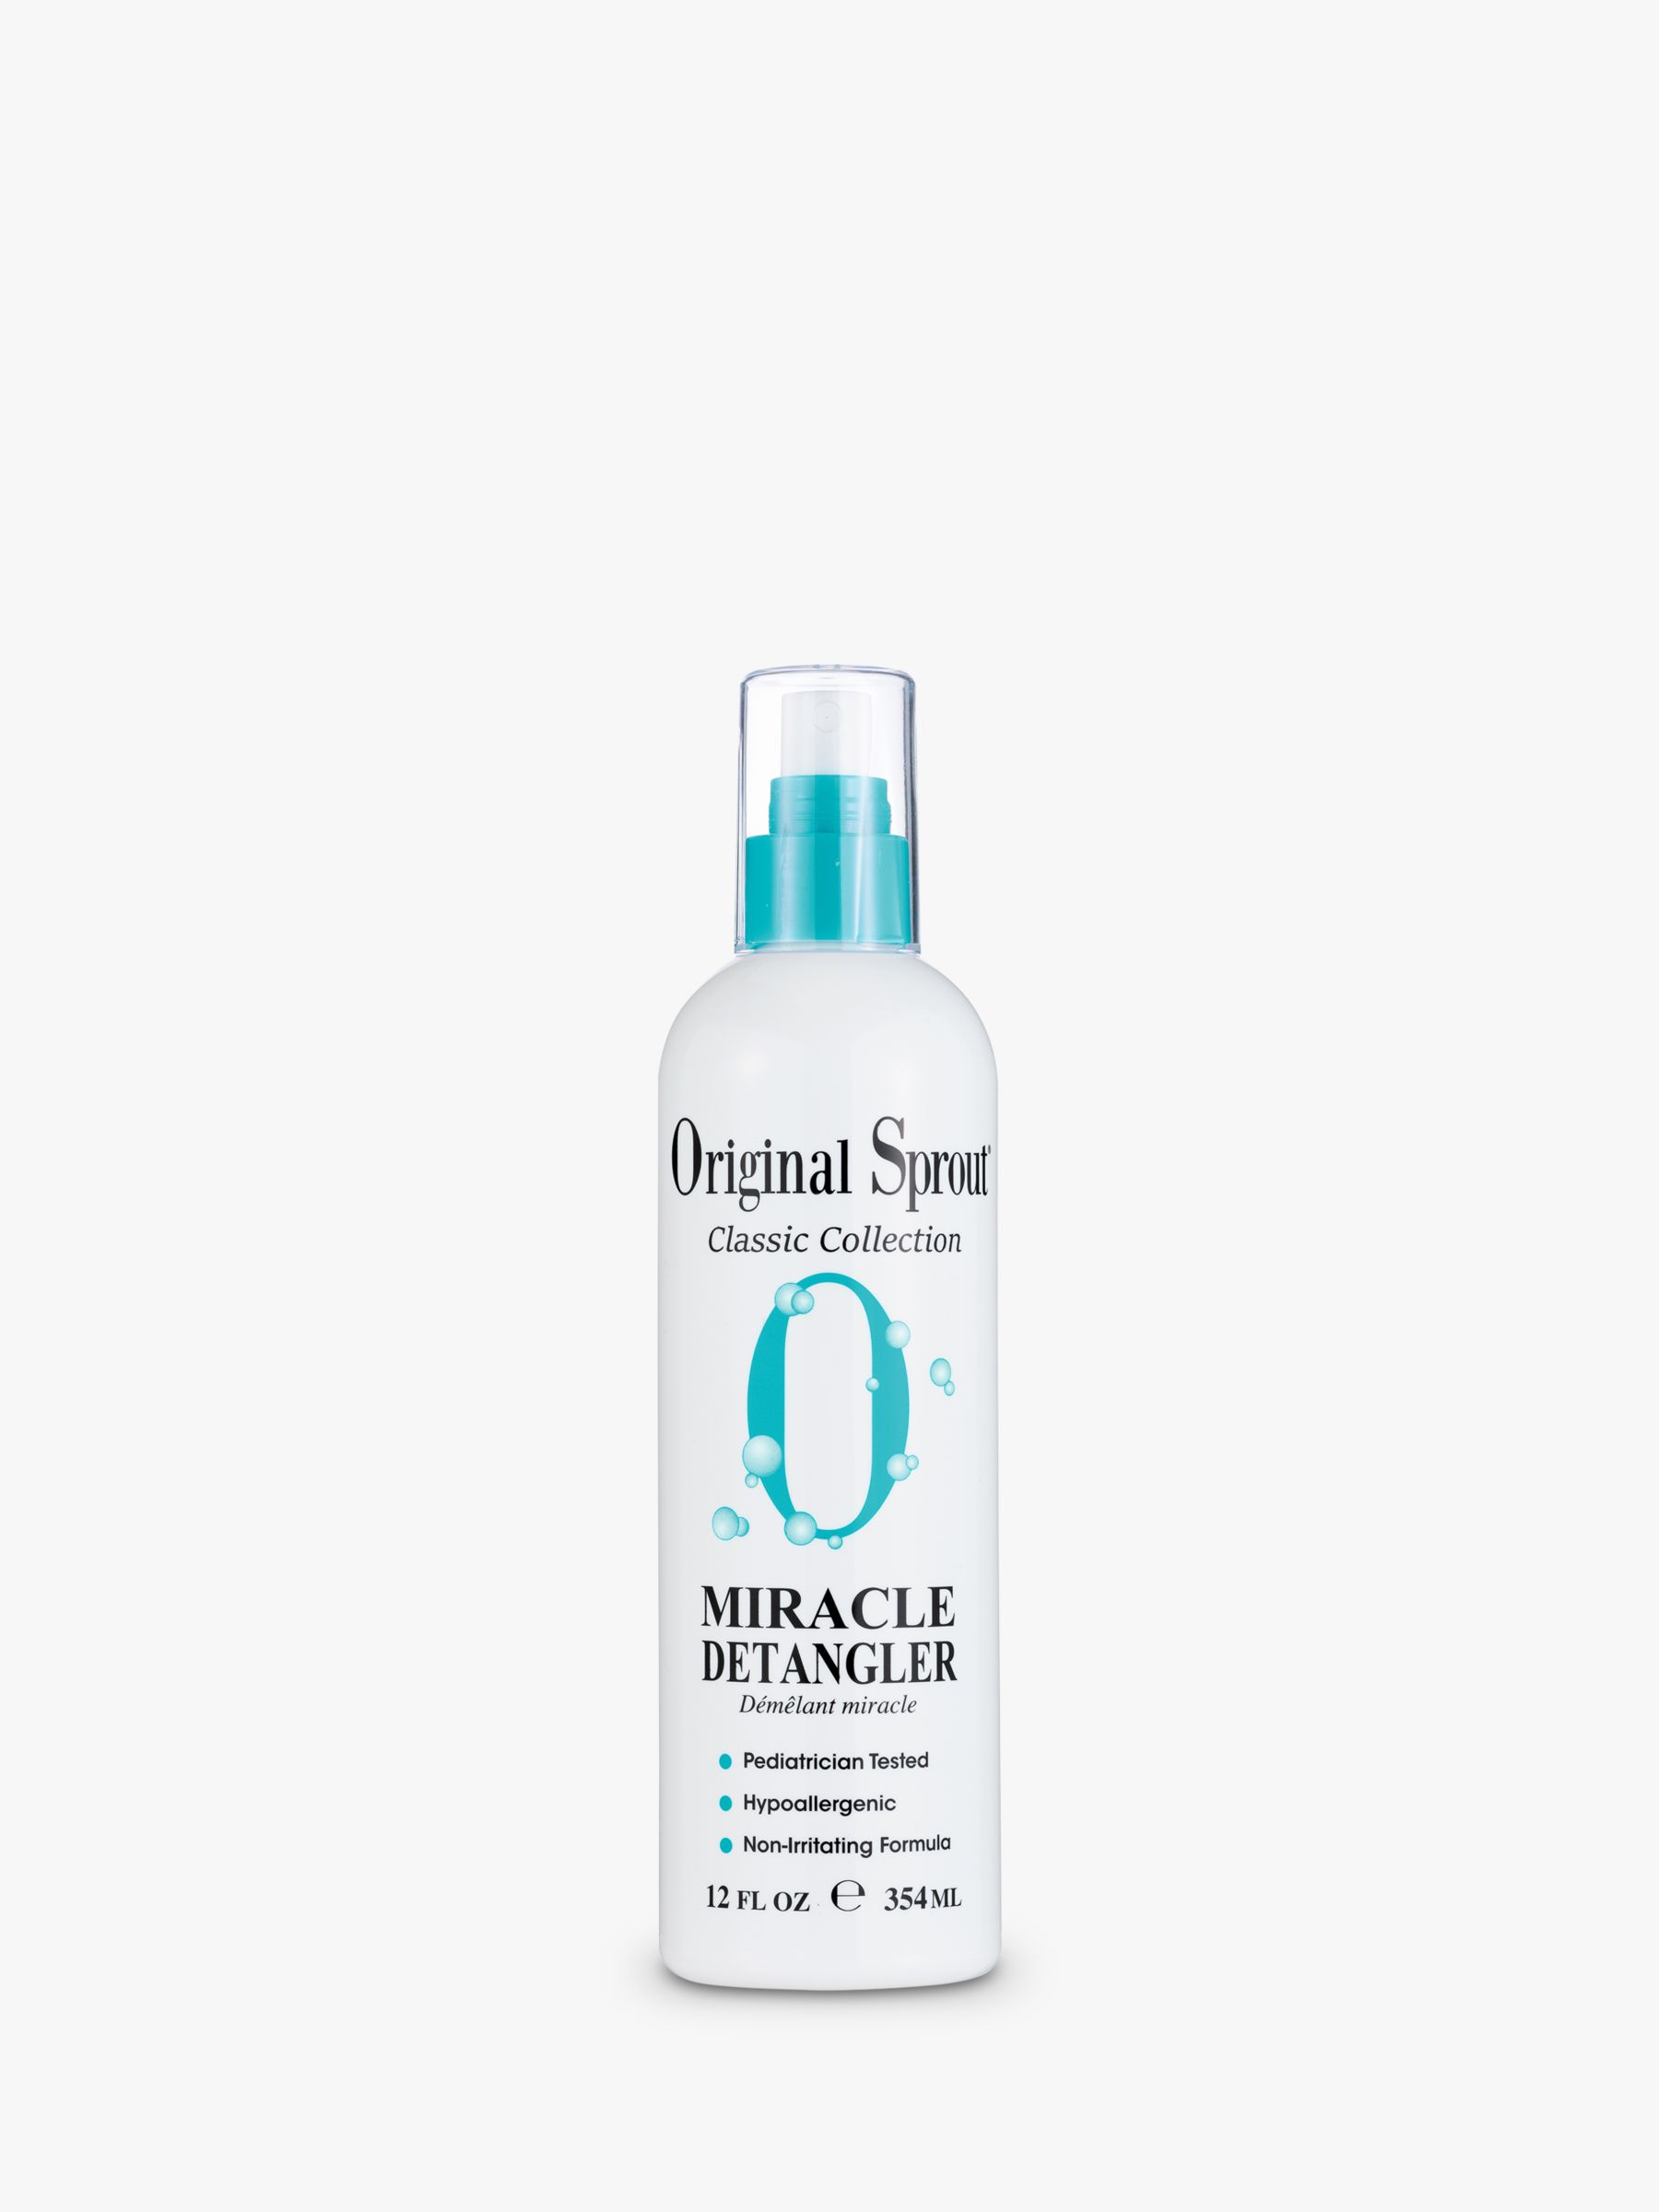 Original Sprout Original Sprout Miracle Baby Detangler Spray, 354ml